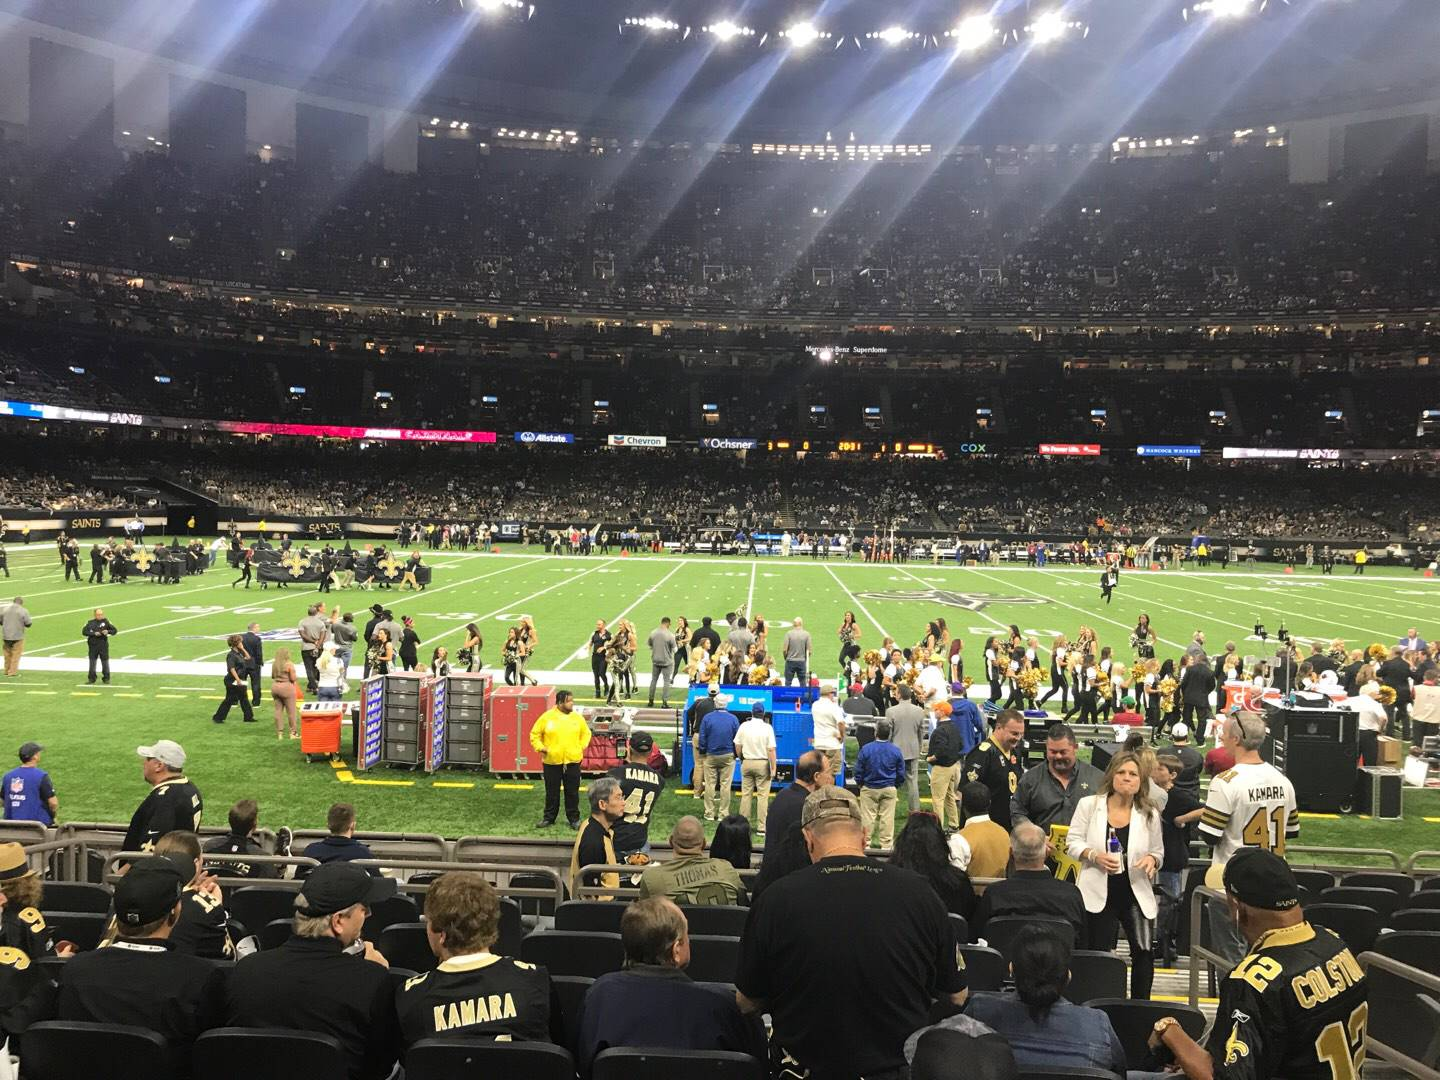 Mercedes-Benz Superdome Section 115 Row 12 Seat 3